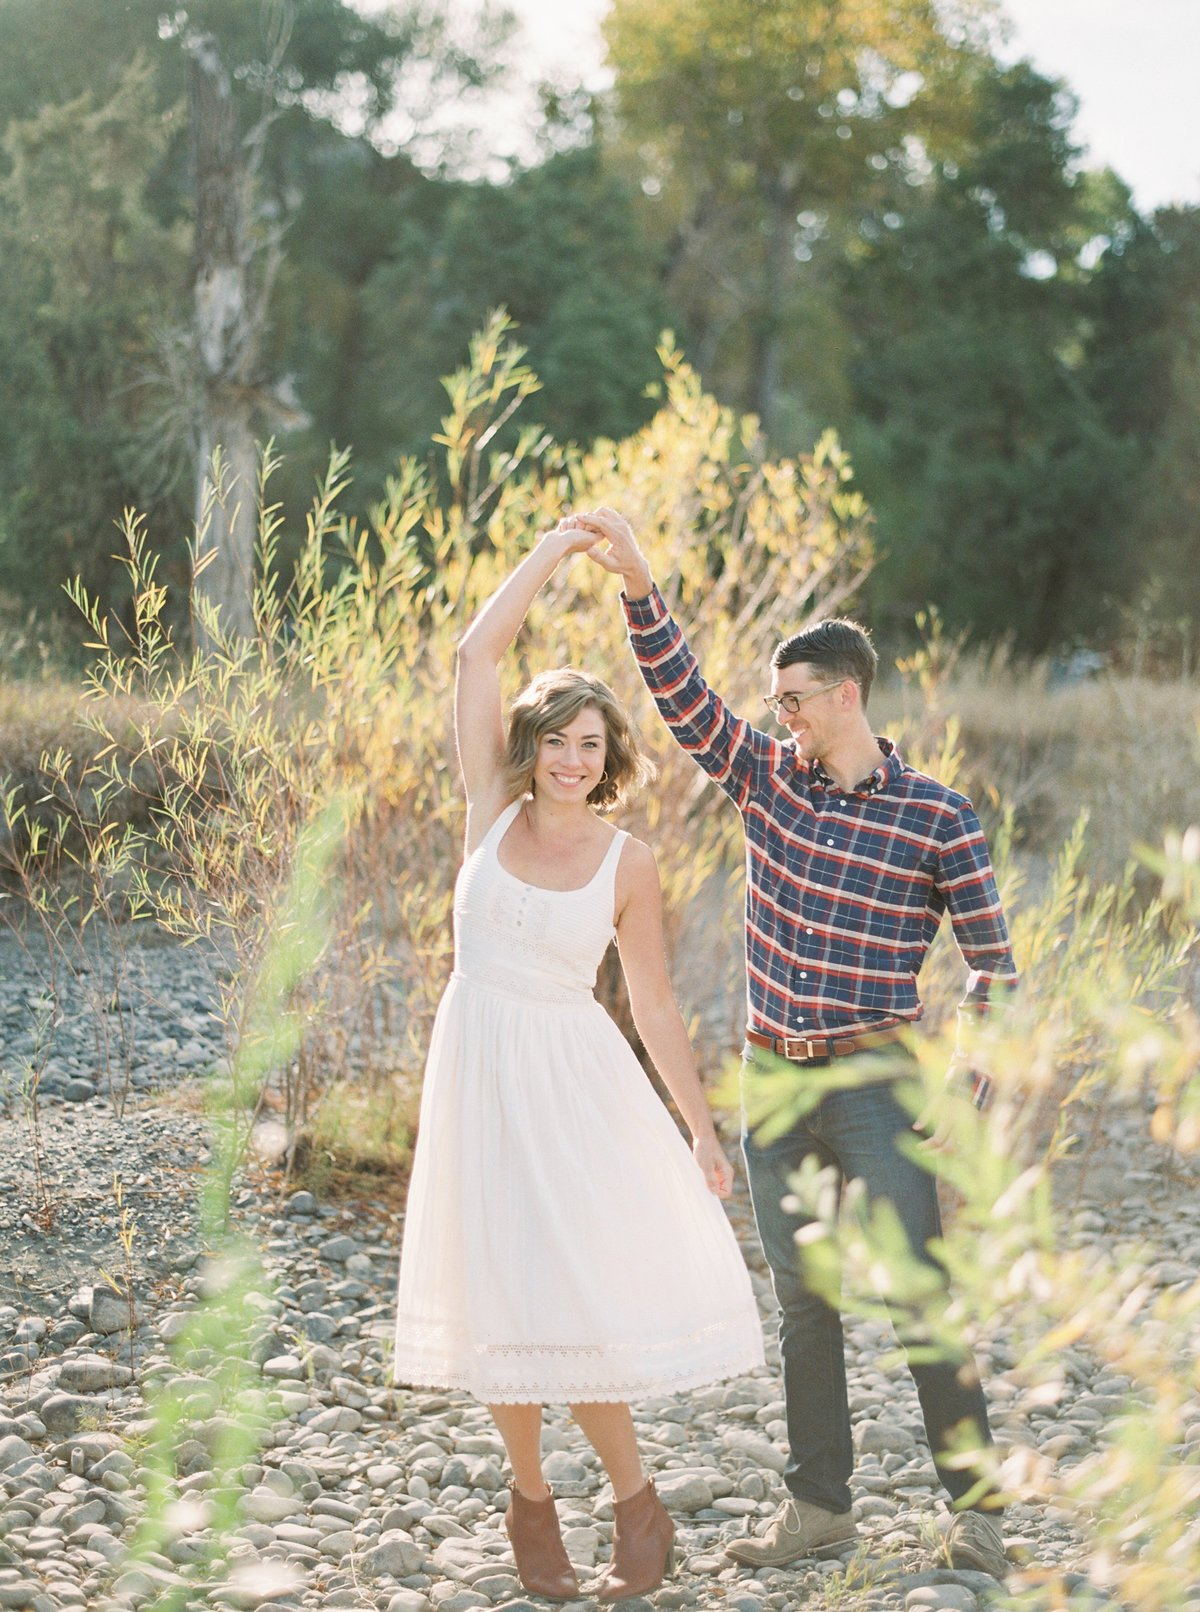 Samantha & Reid, husband and wife Montana wedding Photographers